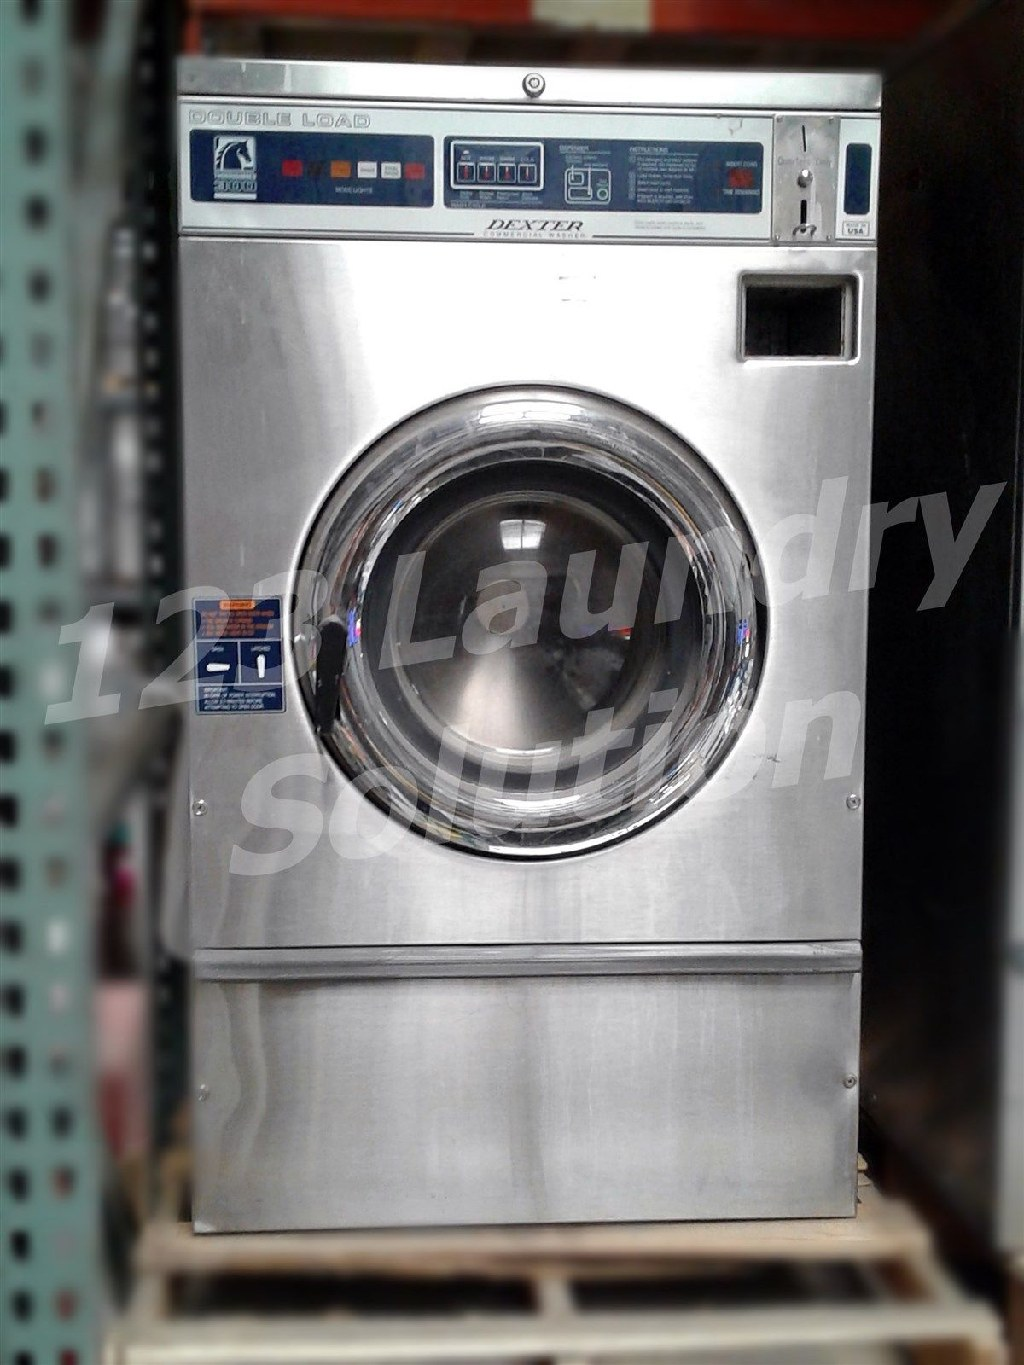 Coin Operated Dexter Front Load Washer Double Load Coin Op T300 3PH WCN18ABSS Stainless Steel